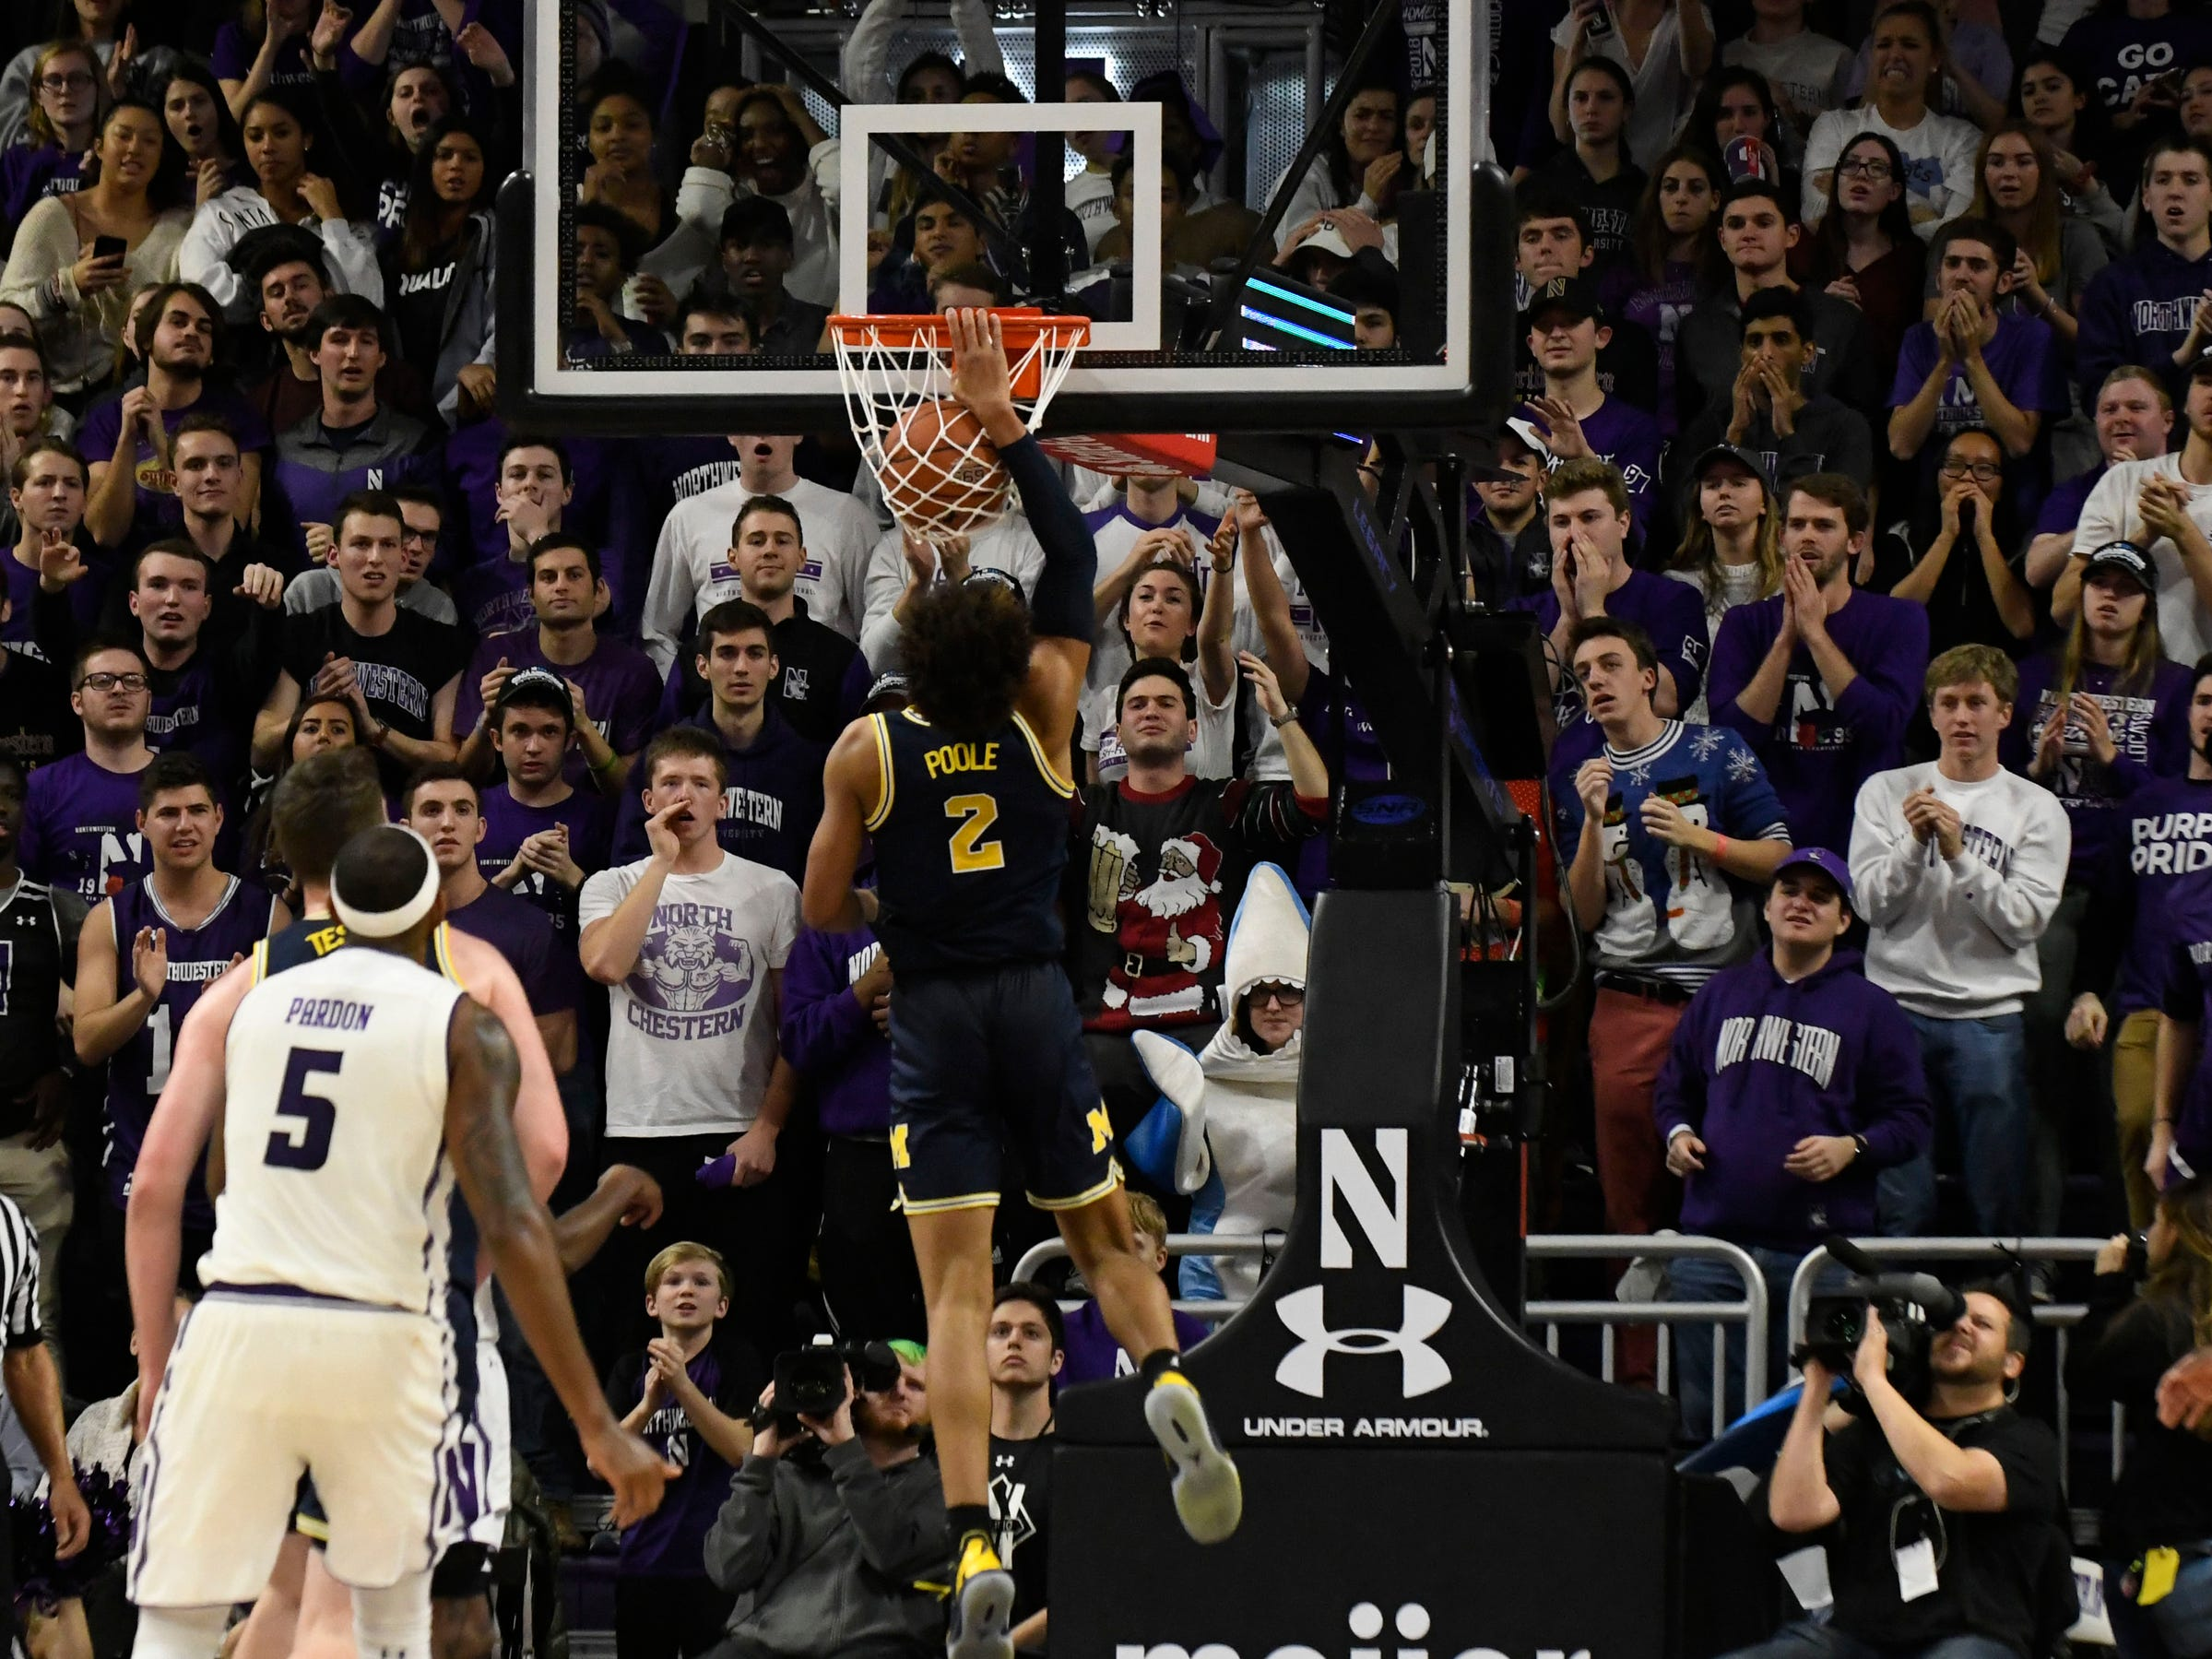 Michigan guard Jordan Poole dunks the ball during the second half of U-M's 62-60 win on Tuesday, Dec. 4, 2018, in Evanston, Ill.